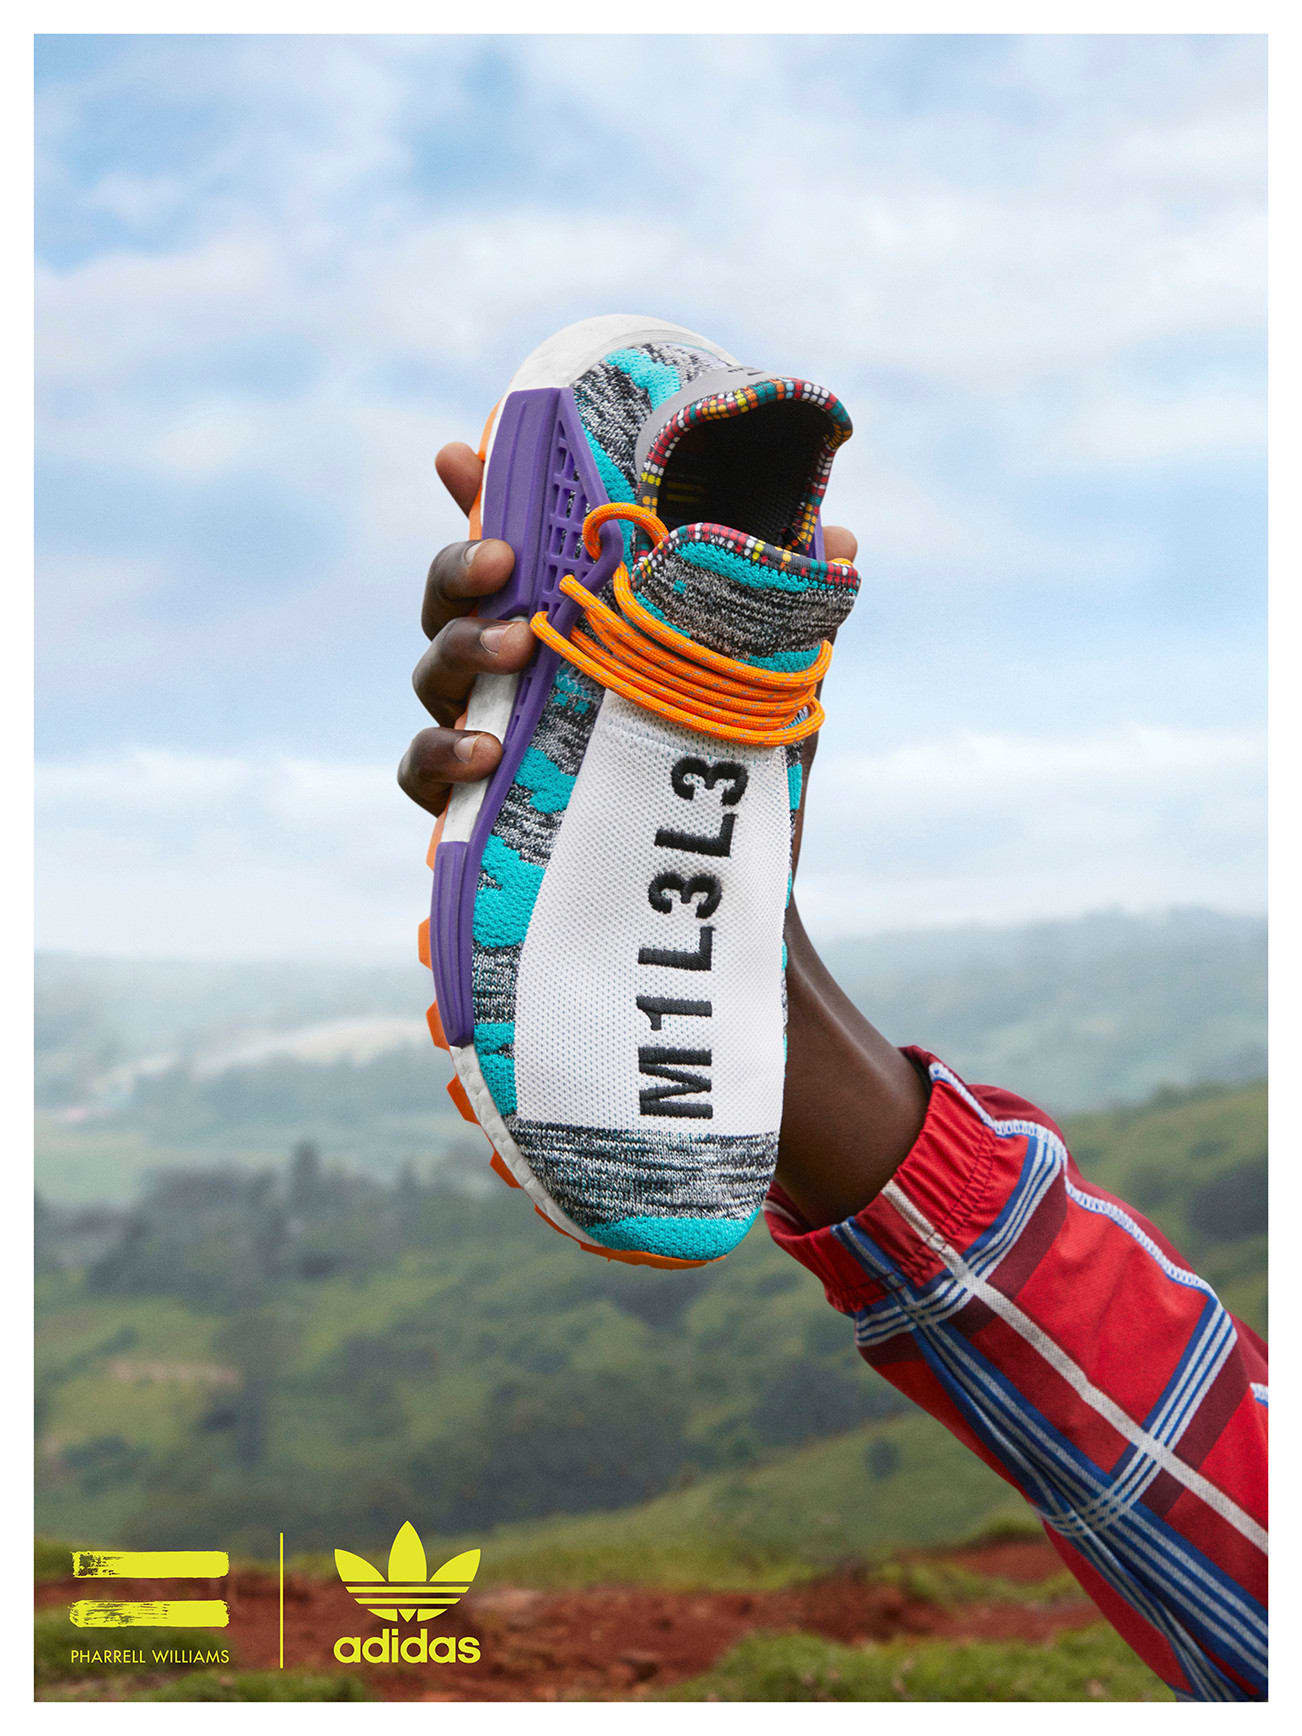 END. Features | Check out the Pharrell x adidas Originals